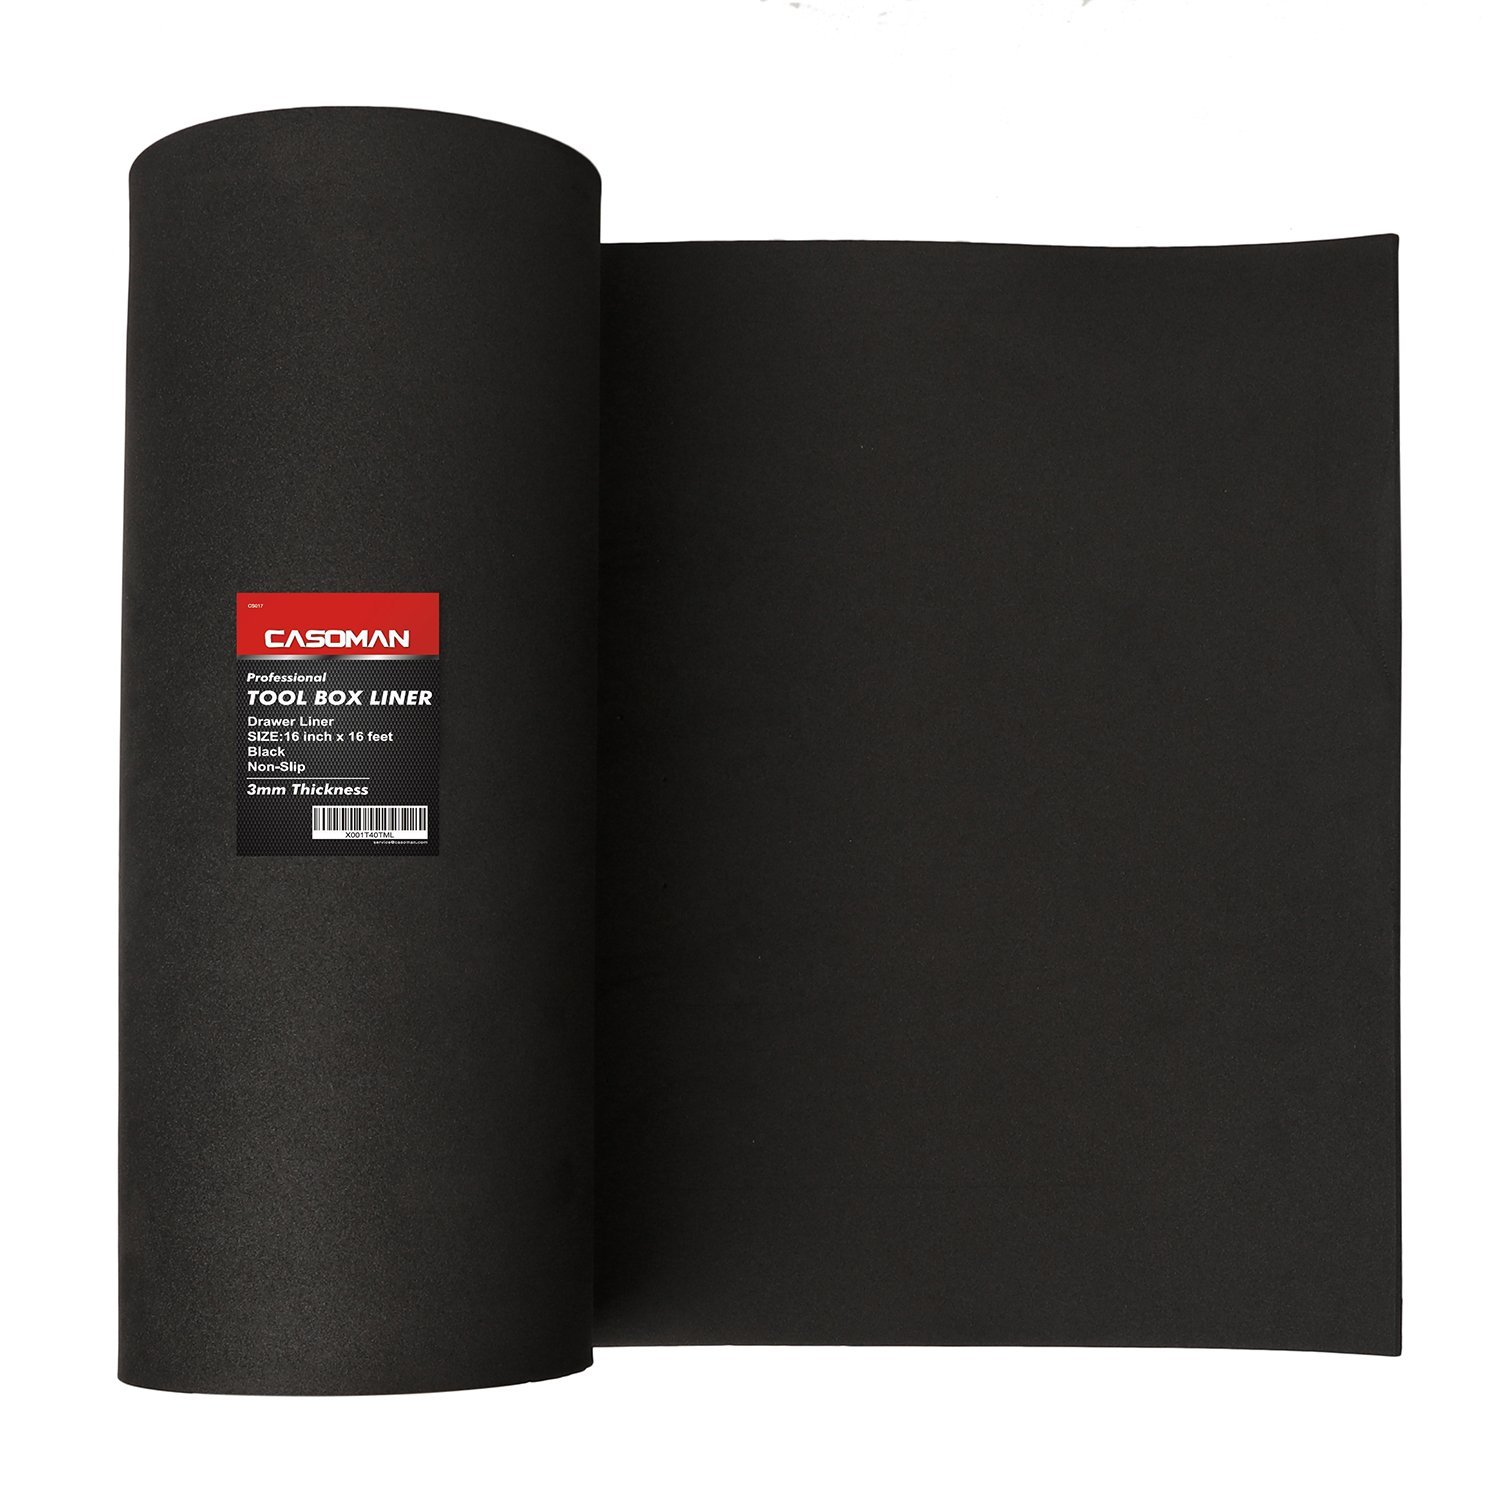 CASOMAN Professional Tool Box Liner and Drawer Liner - 16 inch(wide) x 16 feet (long), Non-Slip, Black, 3mm Thickness (1/8'' thickness)